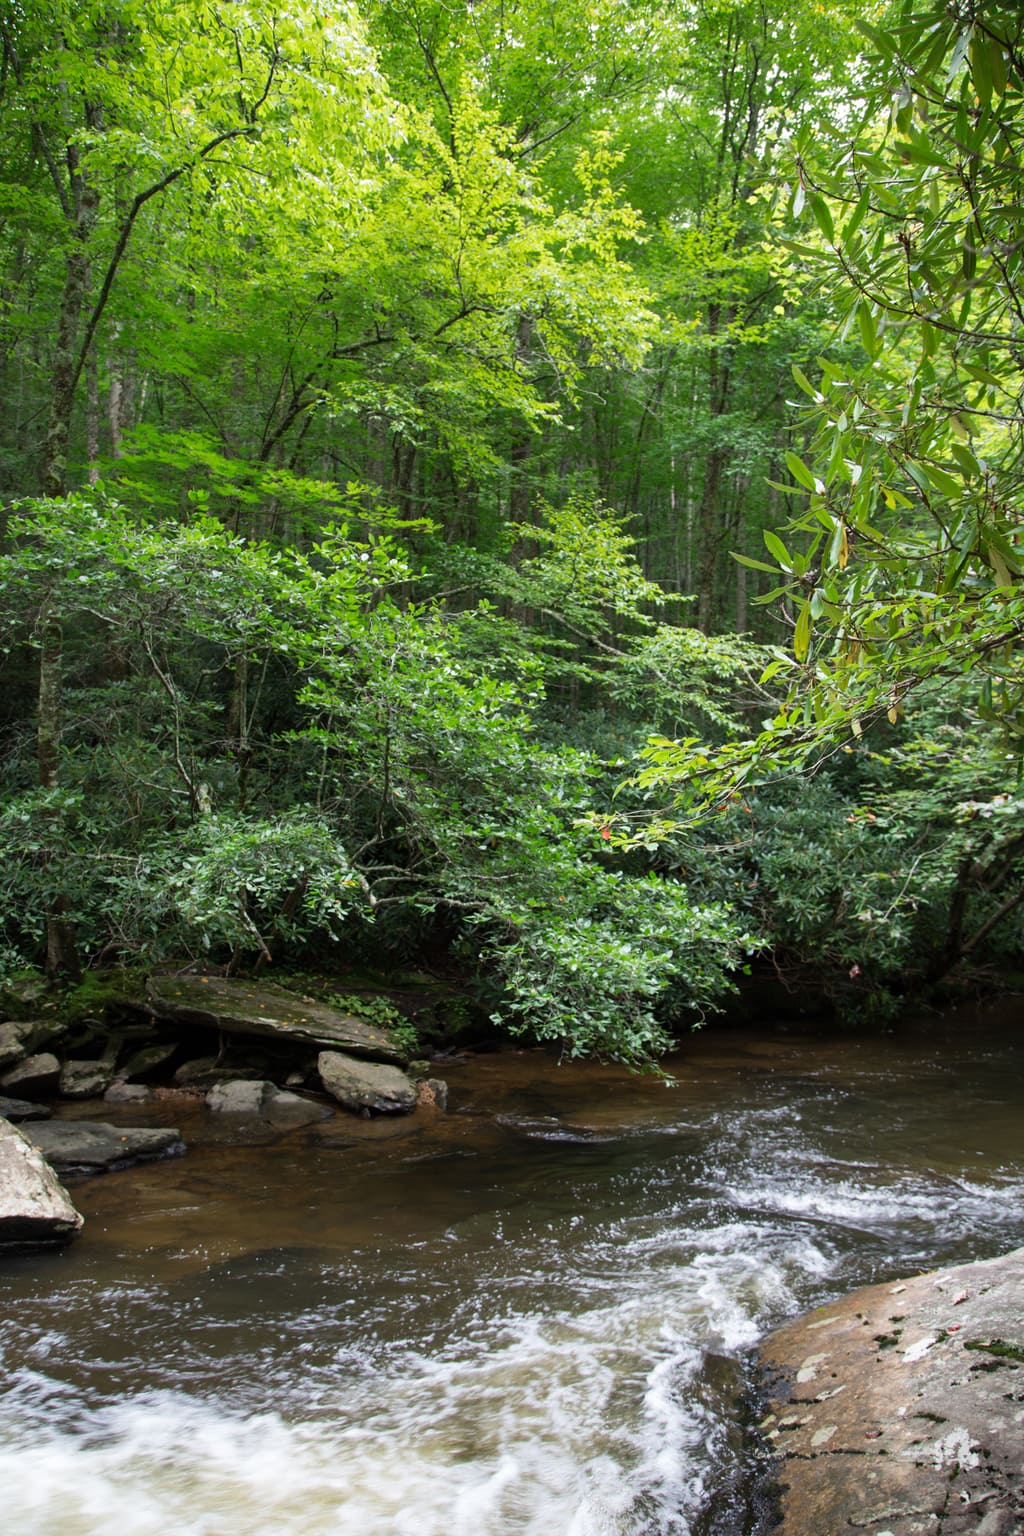 Nature shot of a North Carolina mountain stream and a tall forest background.